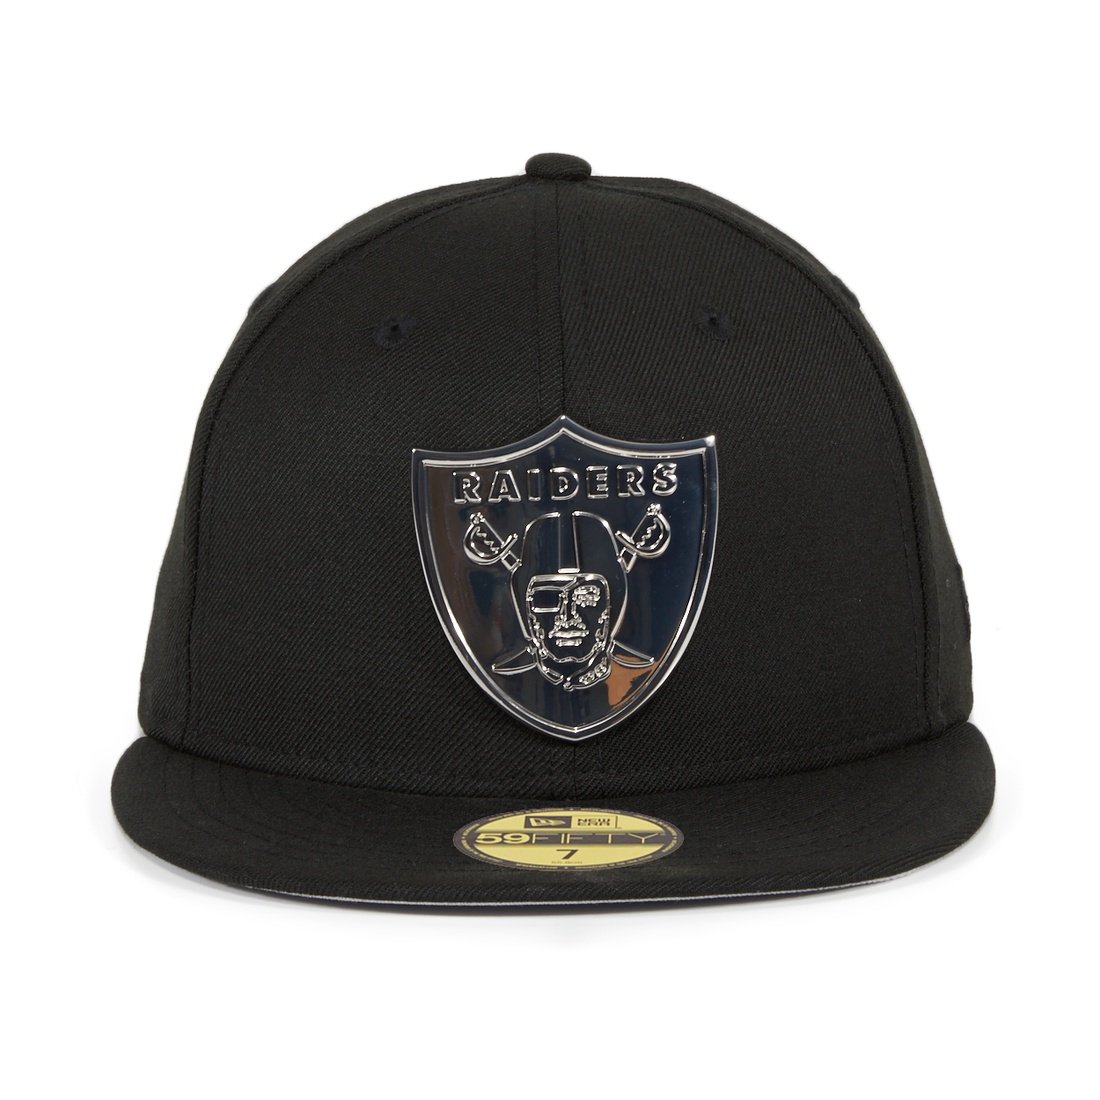 fdaf2efc42b Exclusive New Era 59Fifty Oakland Raiders Metal Emblem Hat - Black ...